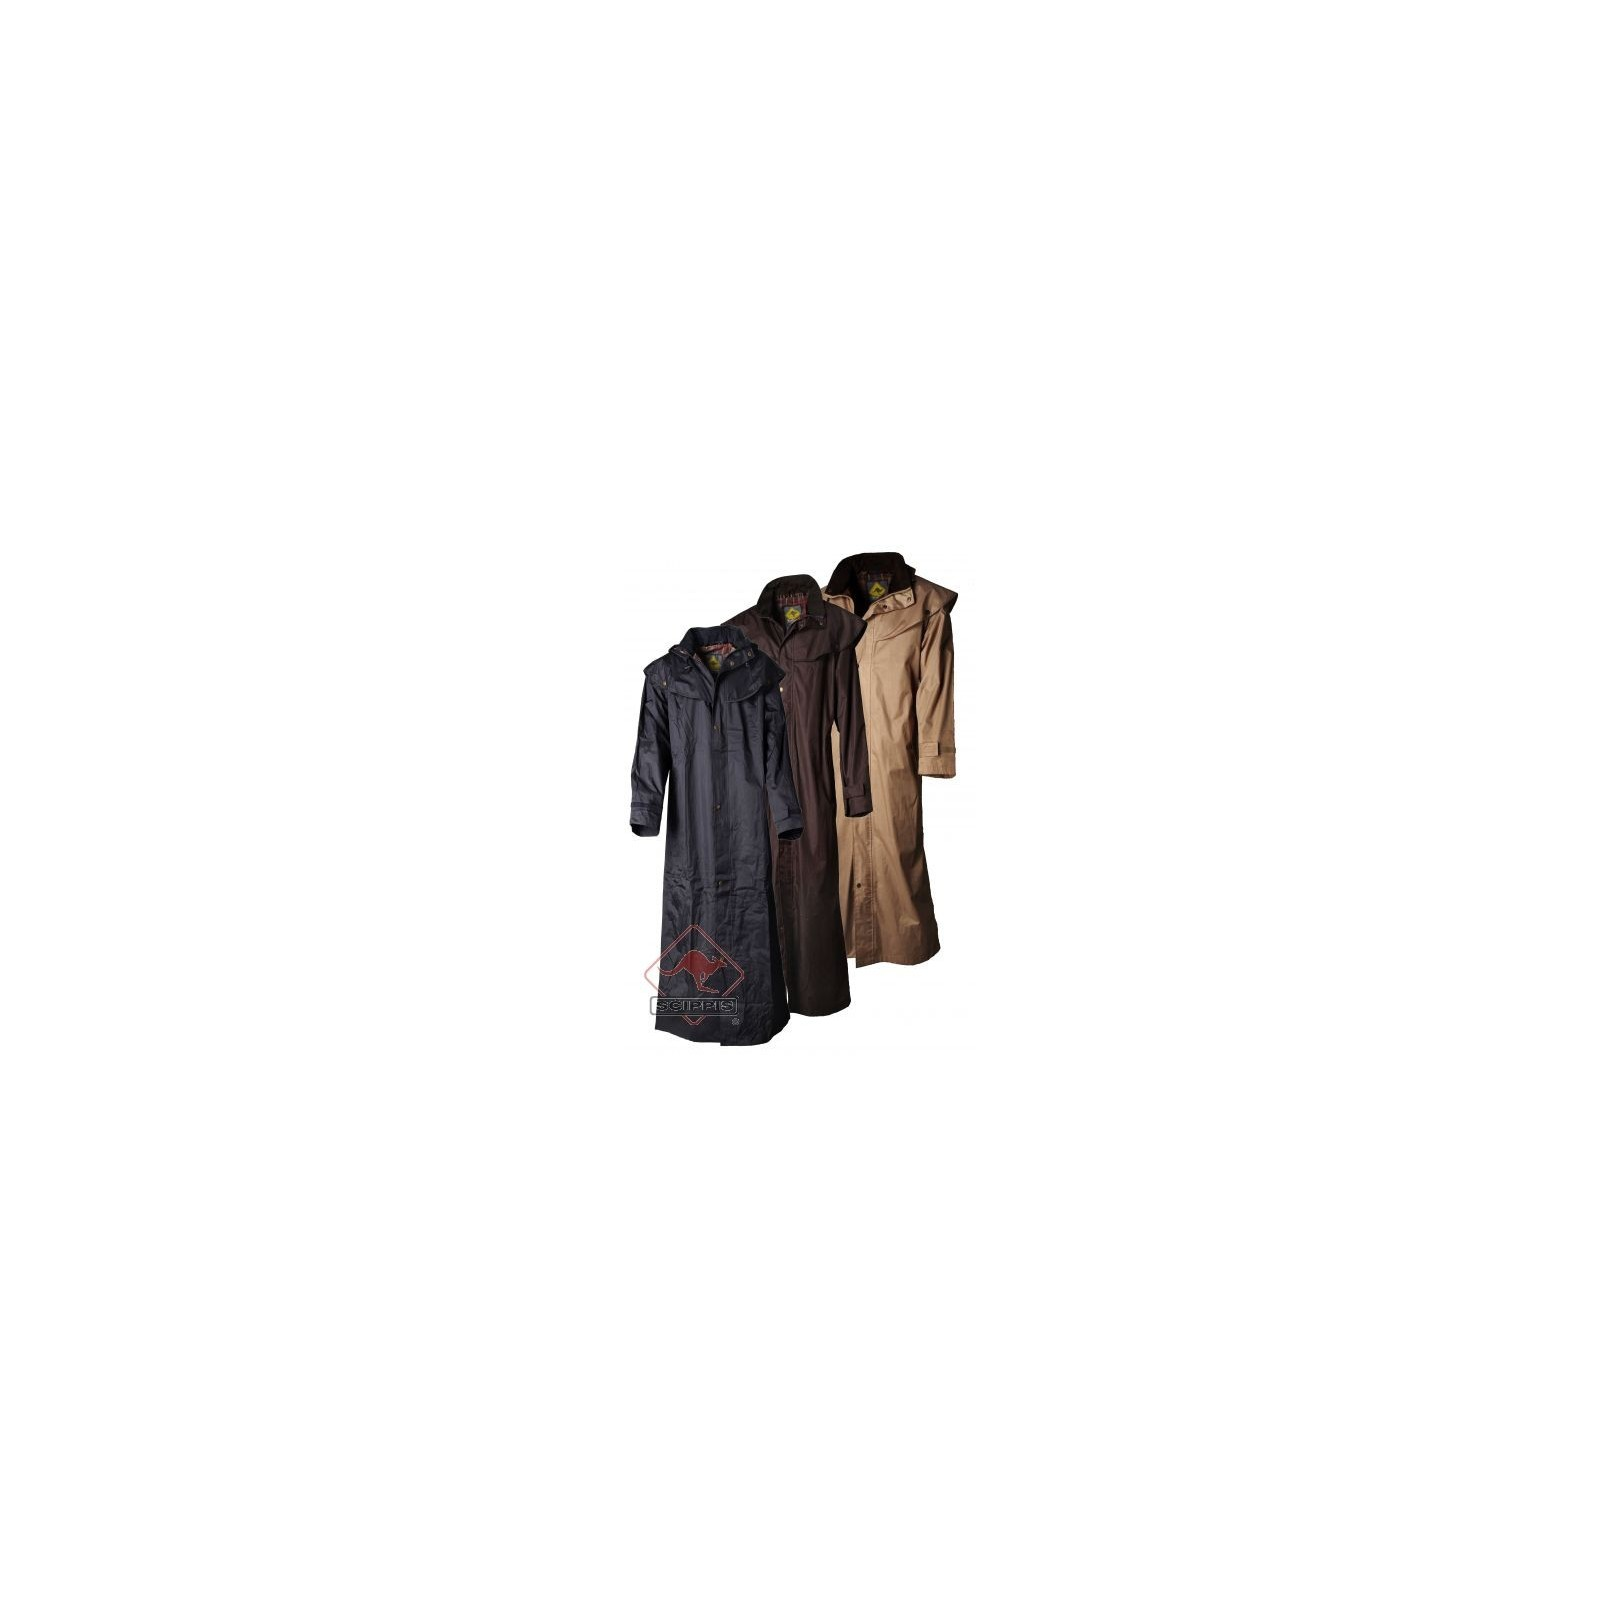 Scippis Stockman Coat (Rain Wear)